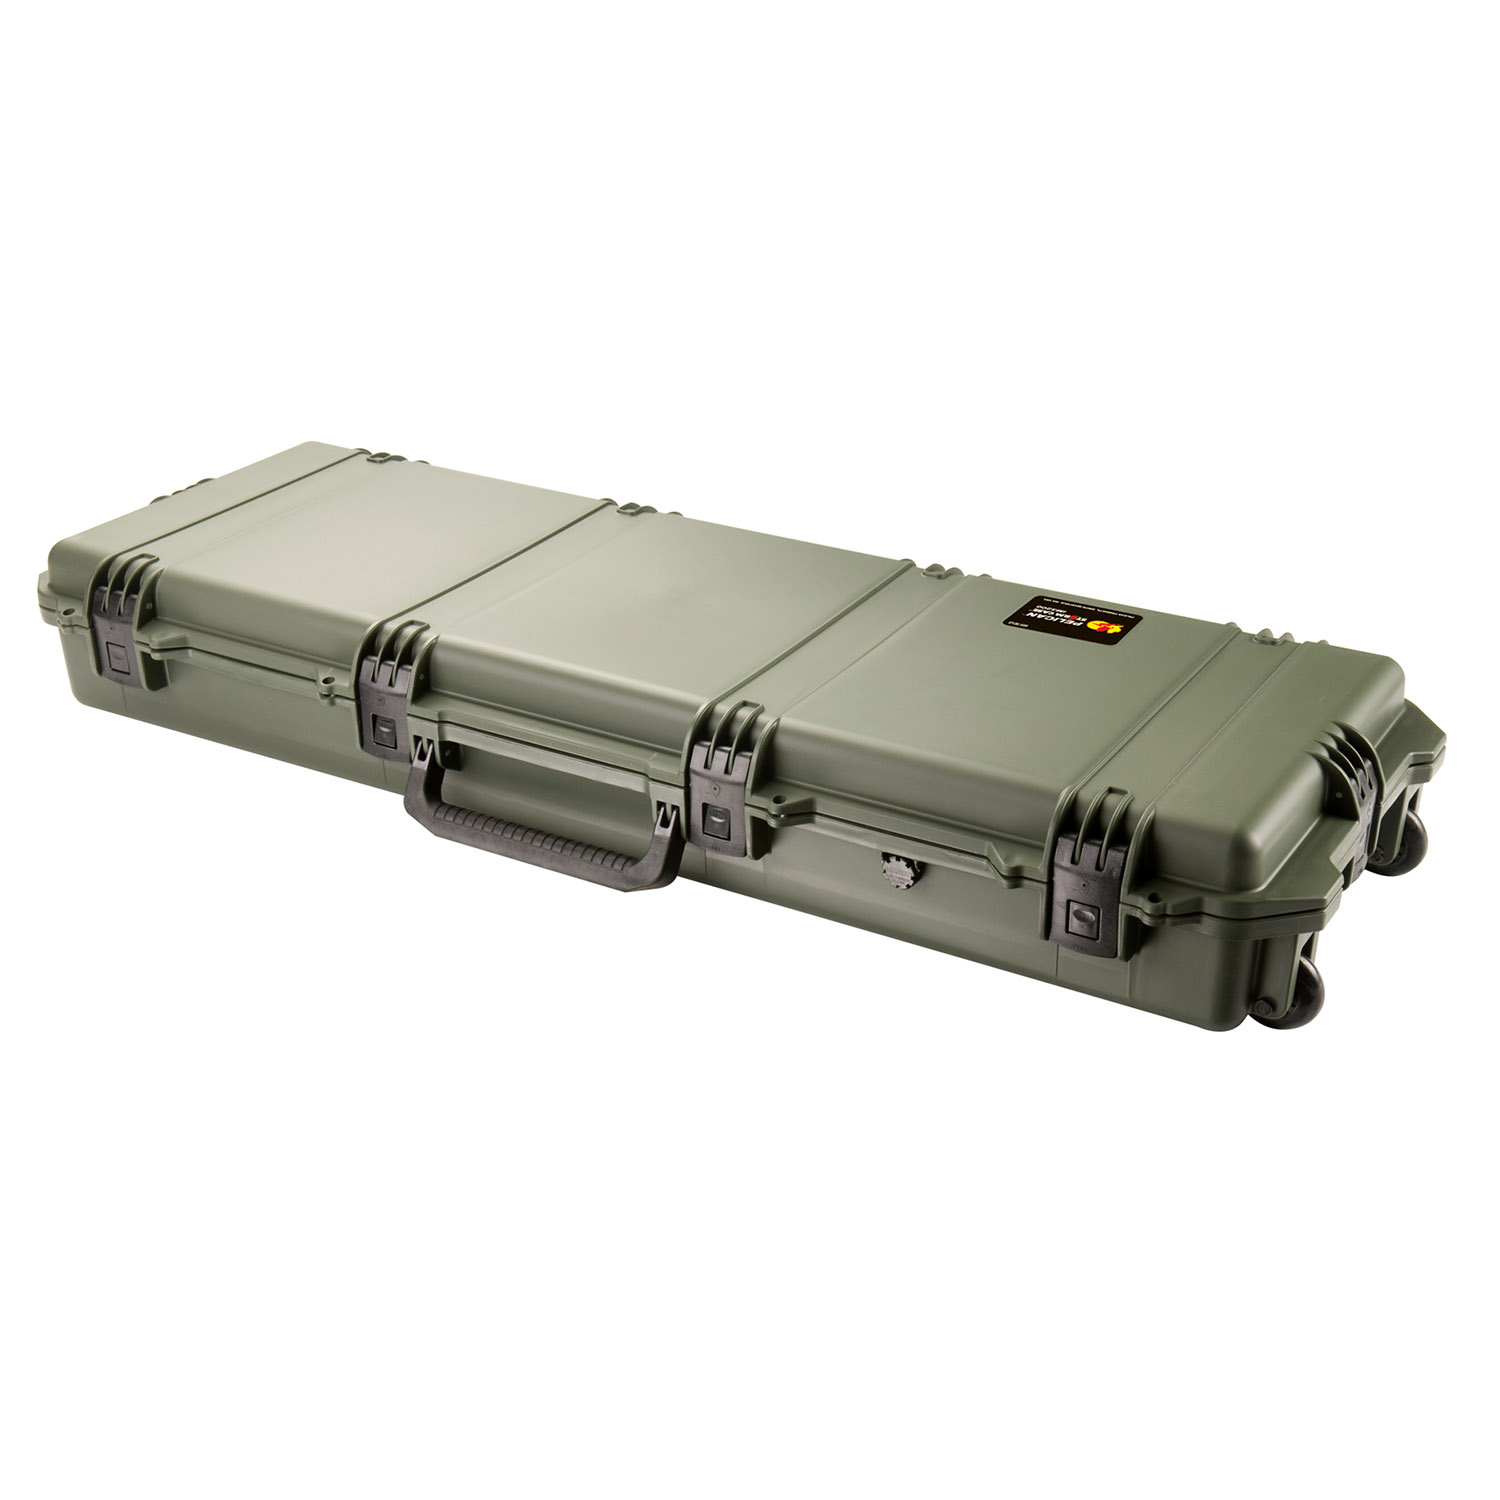 Pelican Storm Long Case iM3200